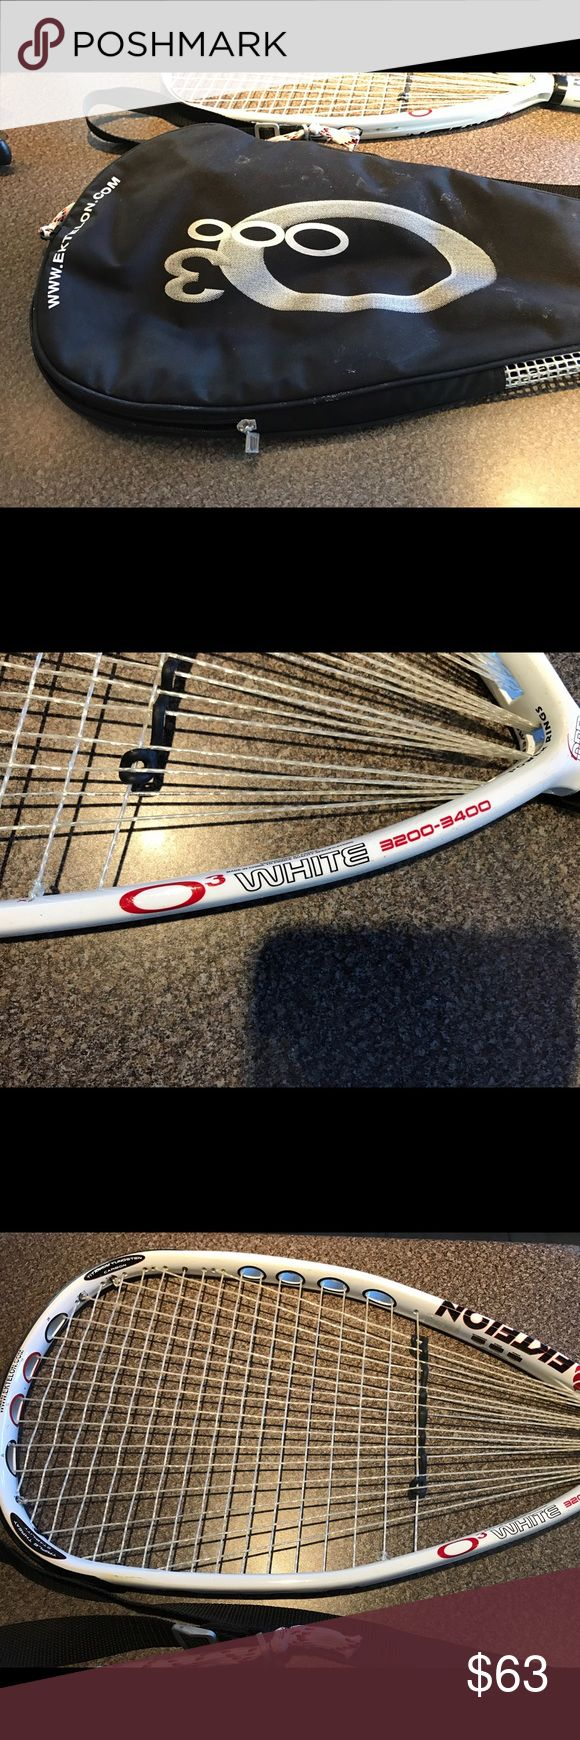 Ektelon Two Rackets White 03 Ektelon Racket with case, 3200-3400 power rating, perfect condition. It comes with two rackets. Ektelon Other